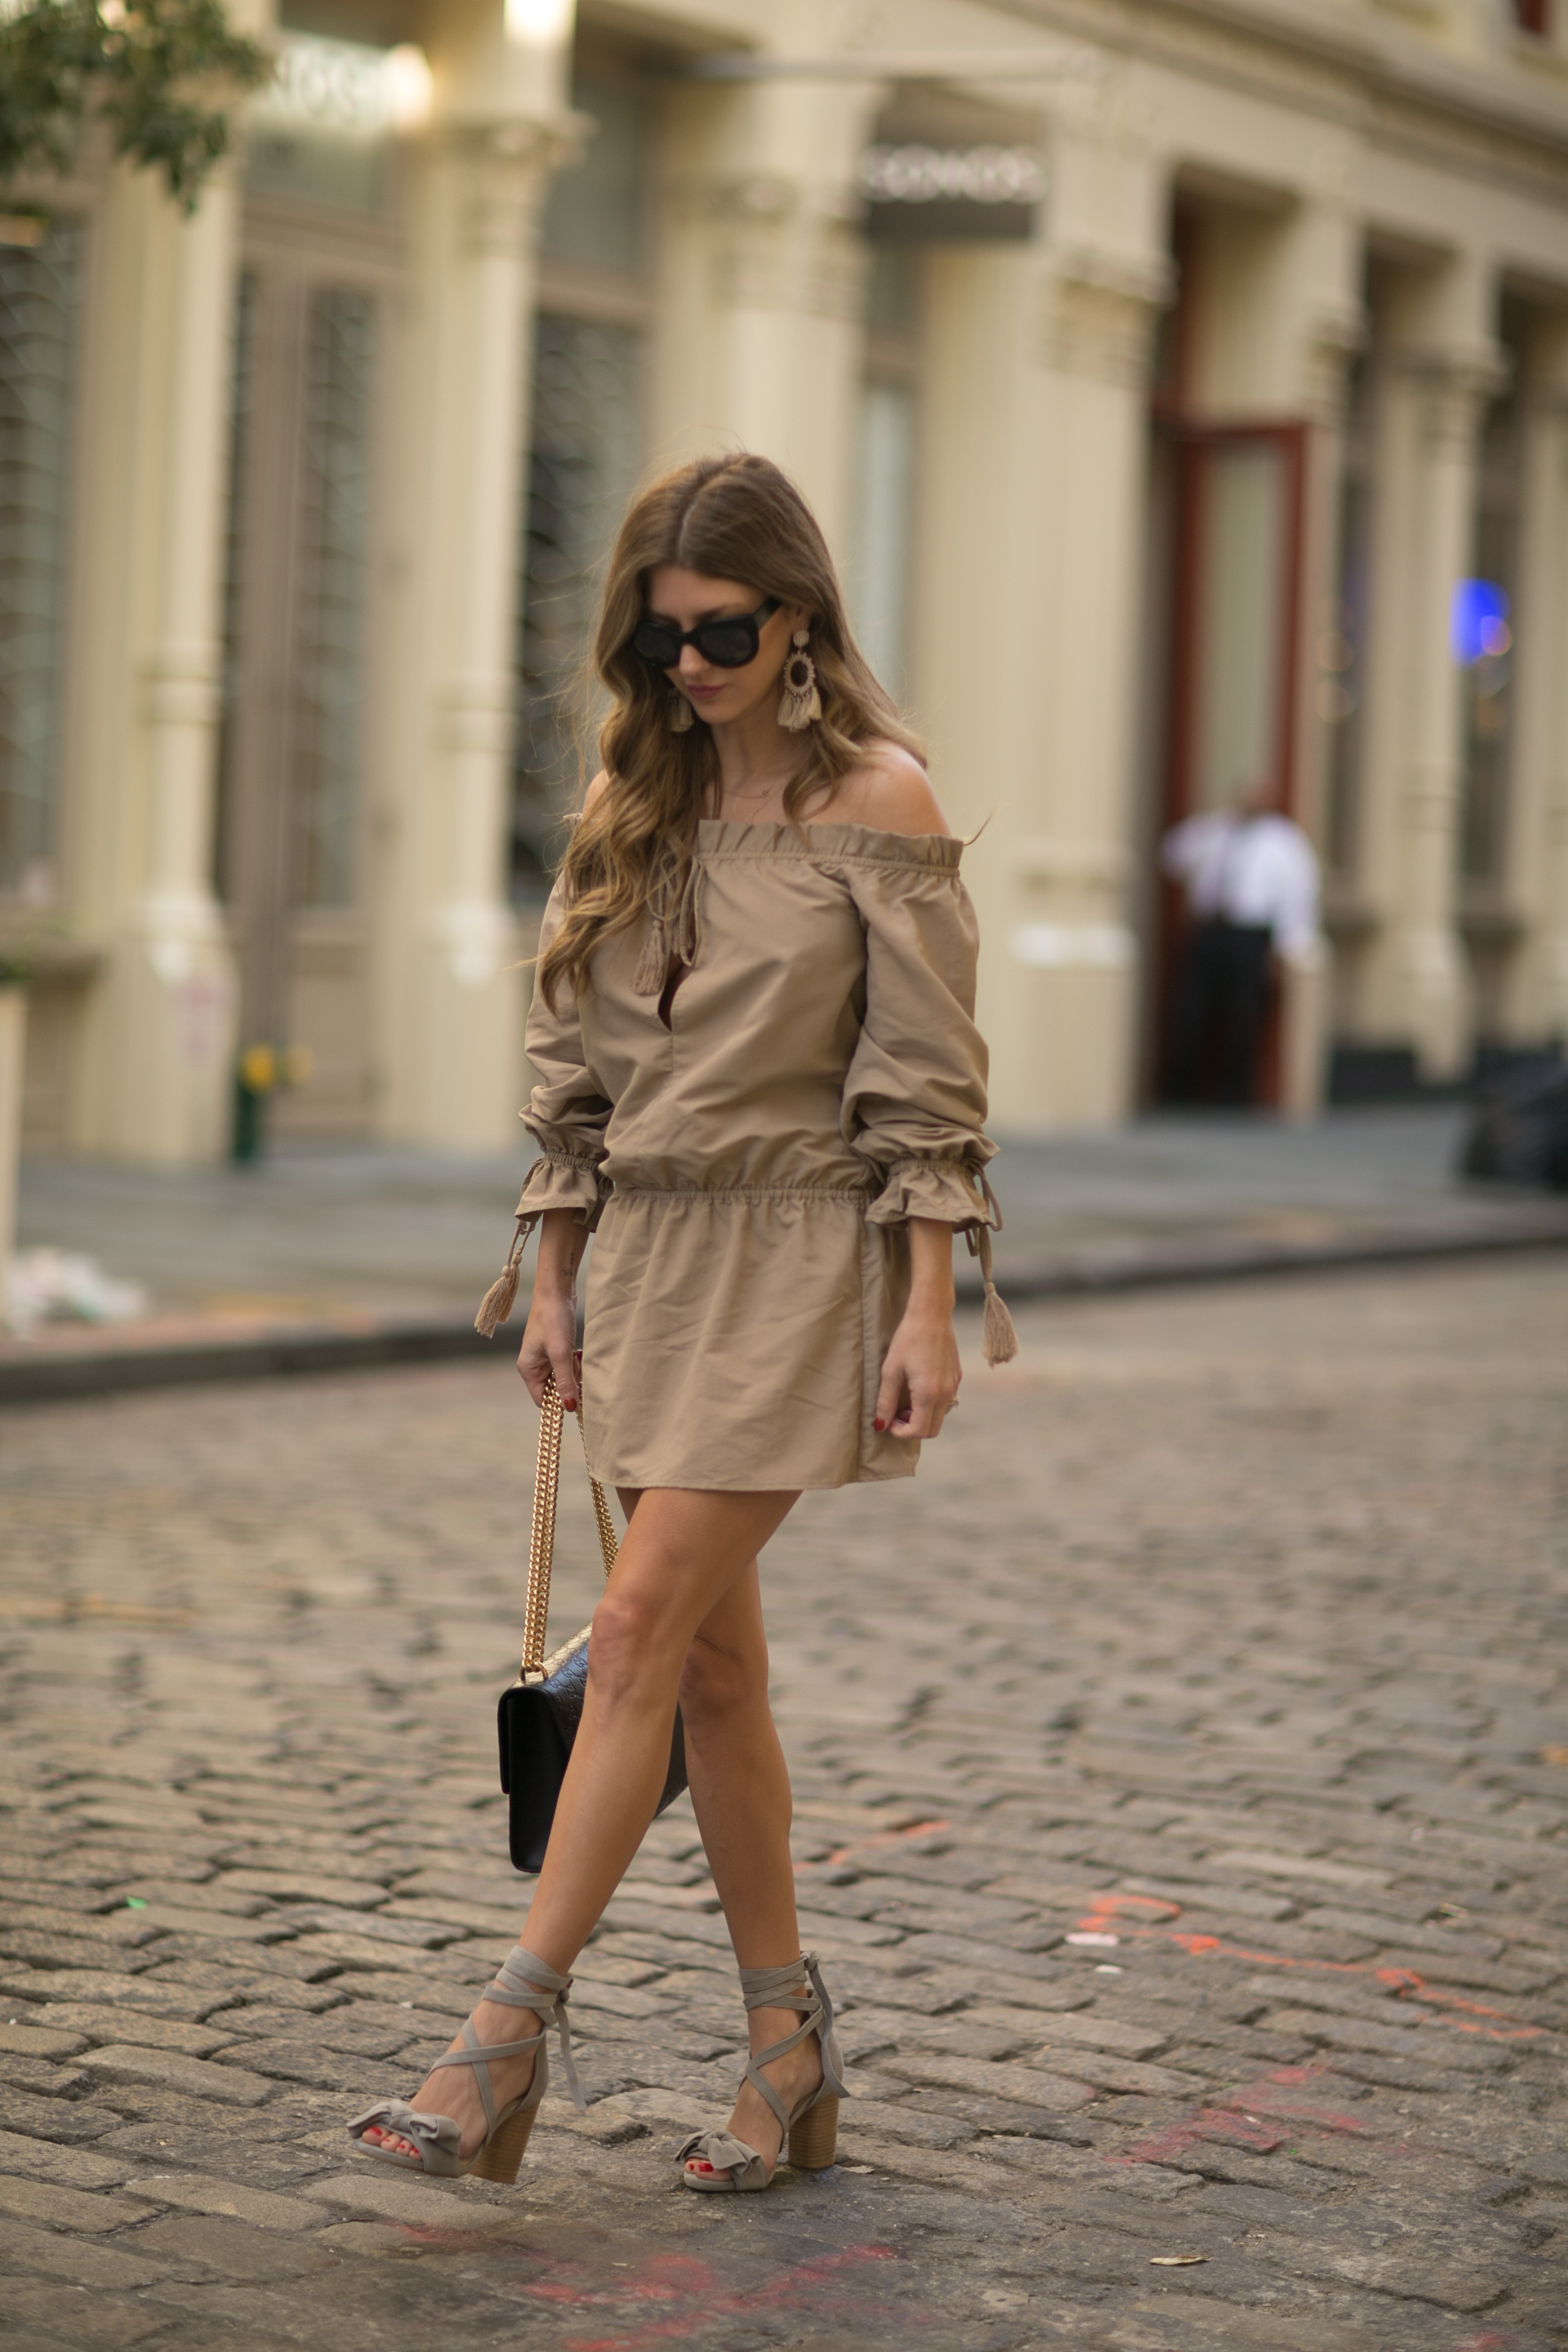 Walking the streets of Chelea New York during fashion week in Tularosa and Raye shoes